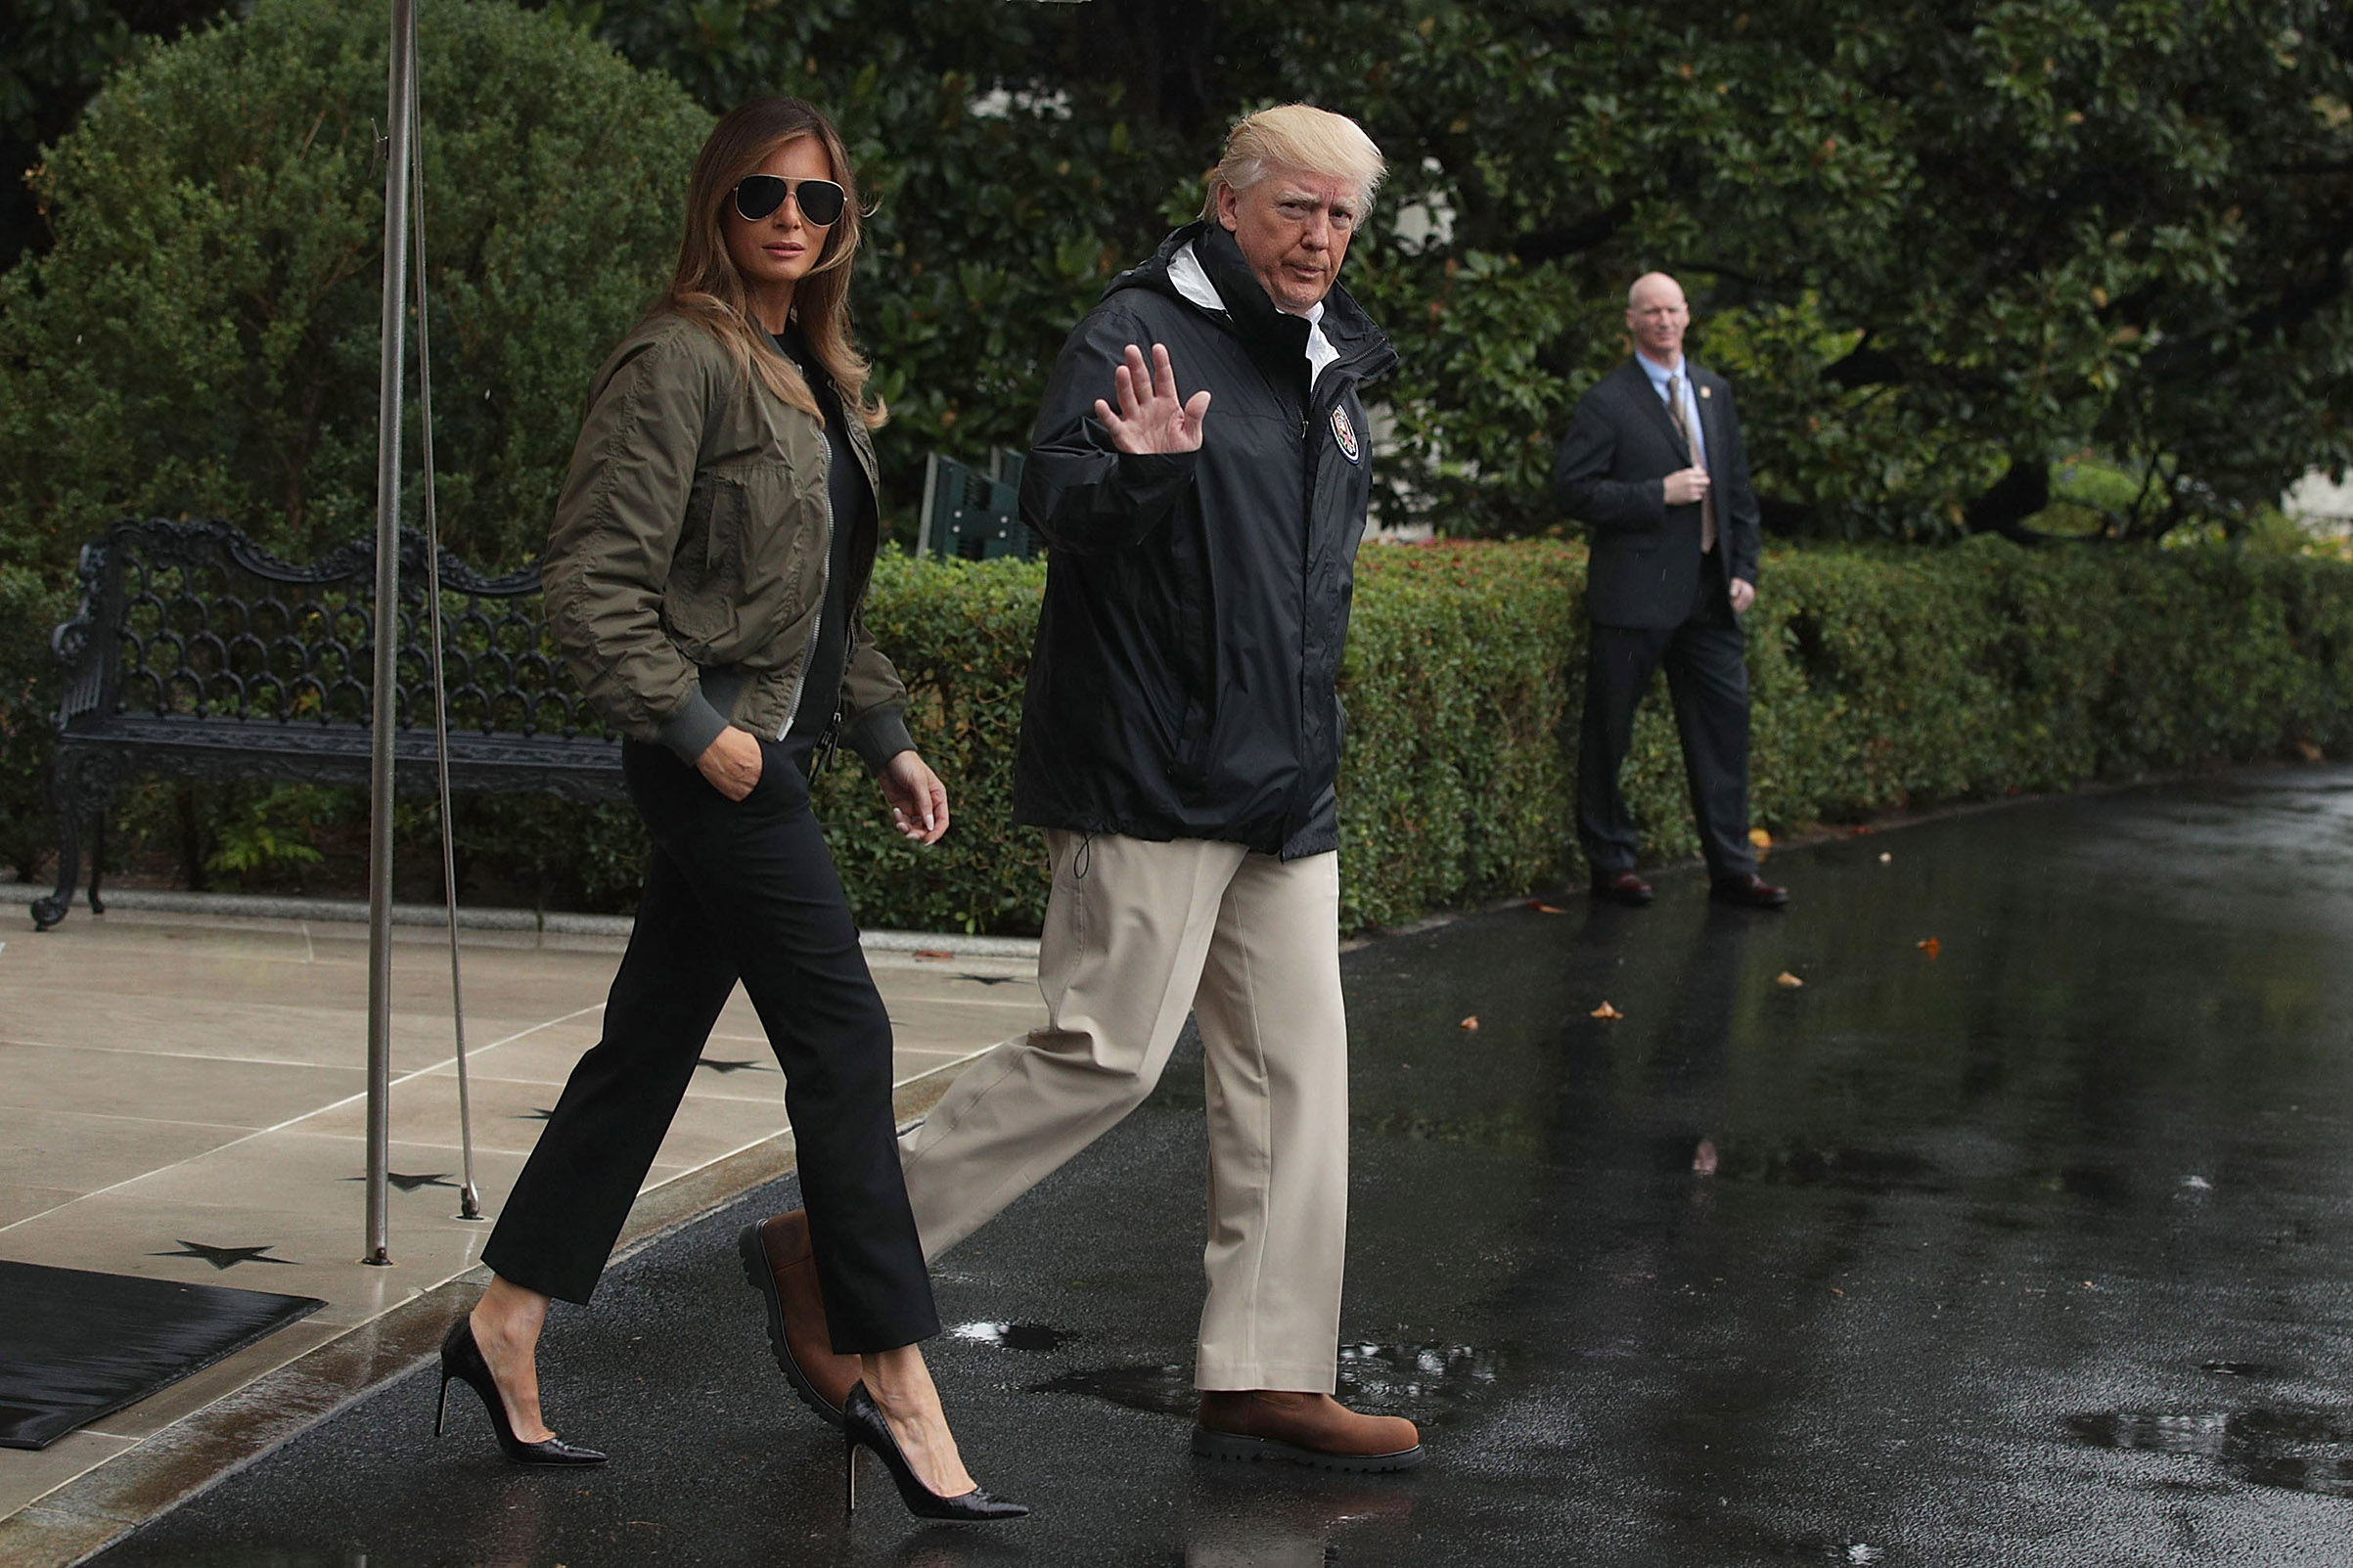 President Donald Trump walks with first lady Melania Trump, wearing a green bomber jacket, black pants and t-shirt and Manolo Blahnik stilettos, on way to Texas to observe the Hurricane Harvey relief efforts, Aug. 29, 2017.